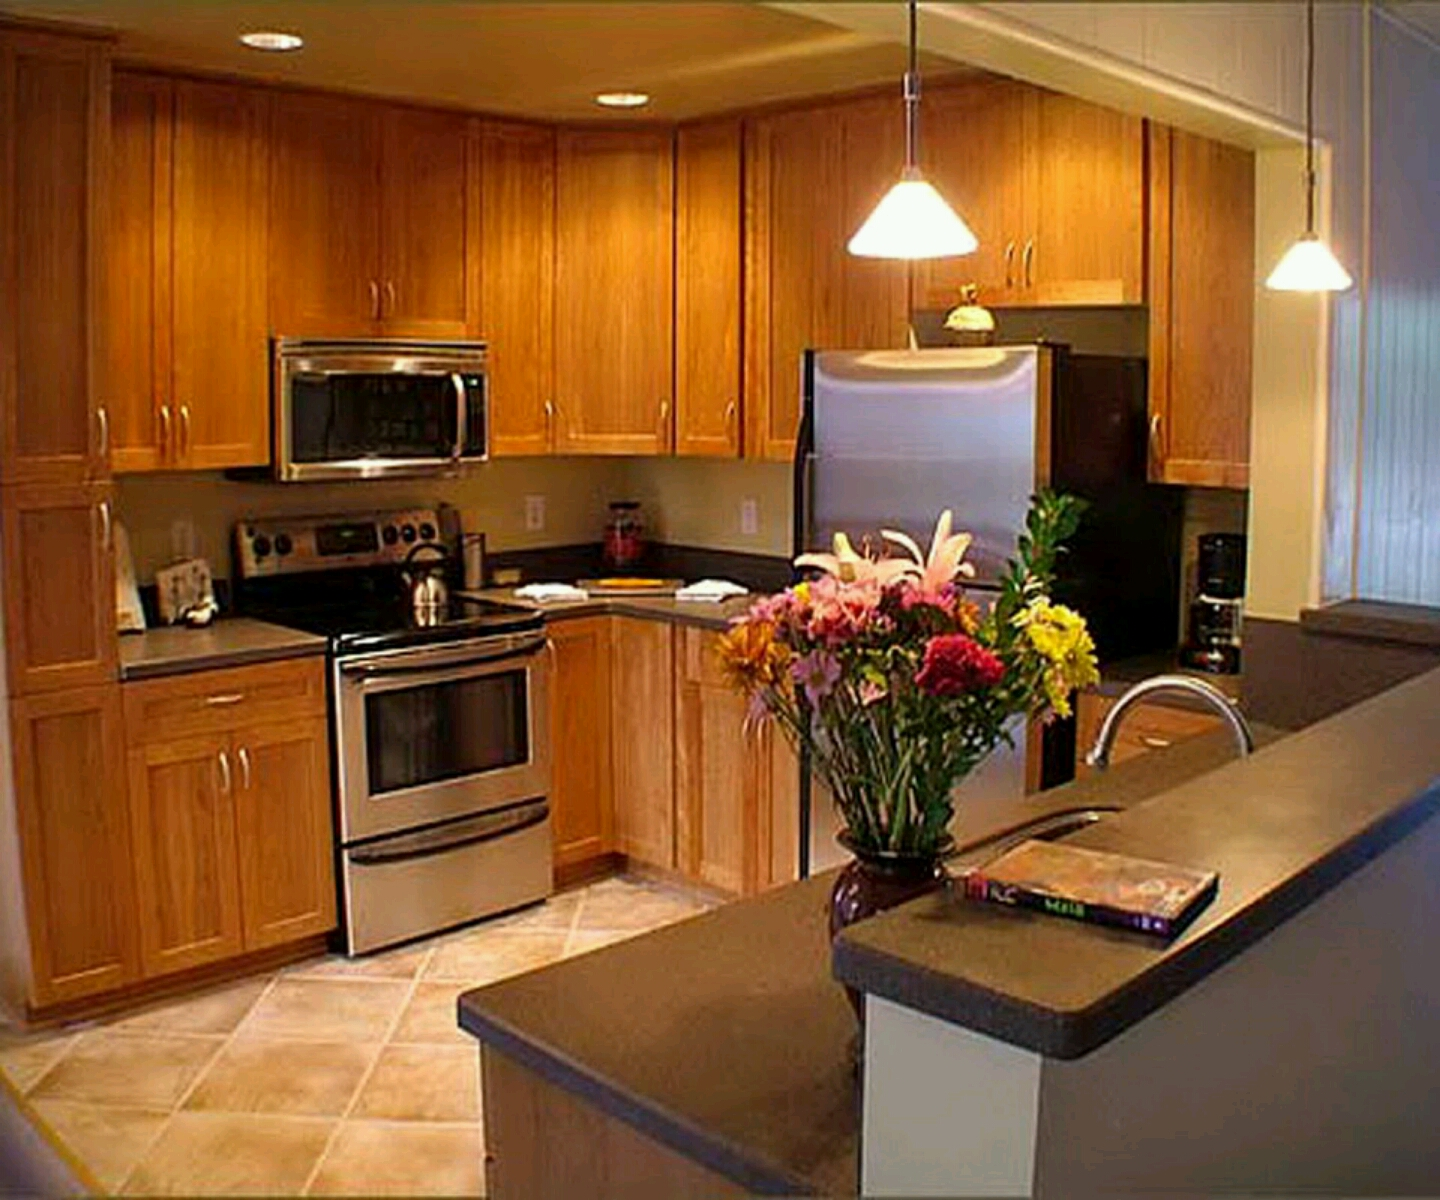 Contemporary wooden kitchen cabinets bill house plans - Kitchen design wood cabinets ...